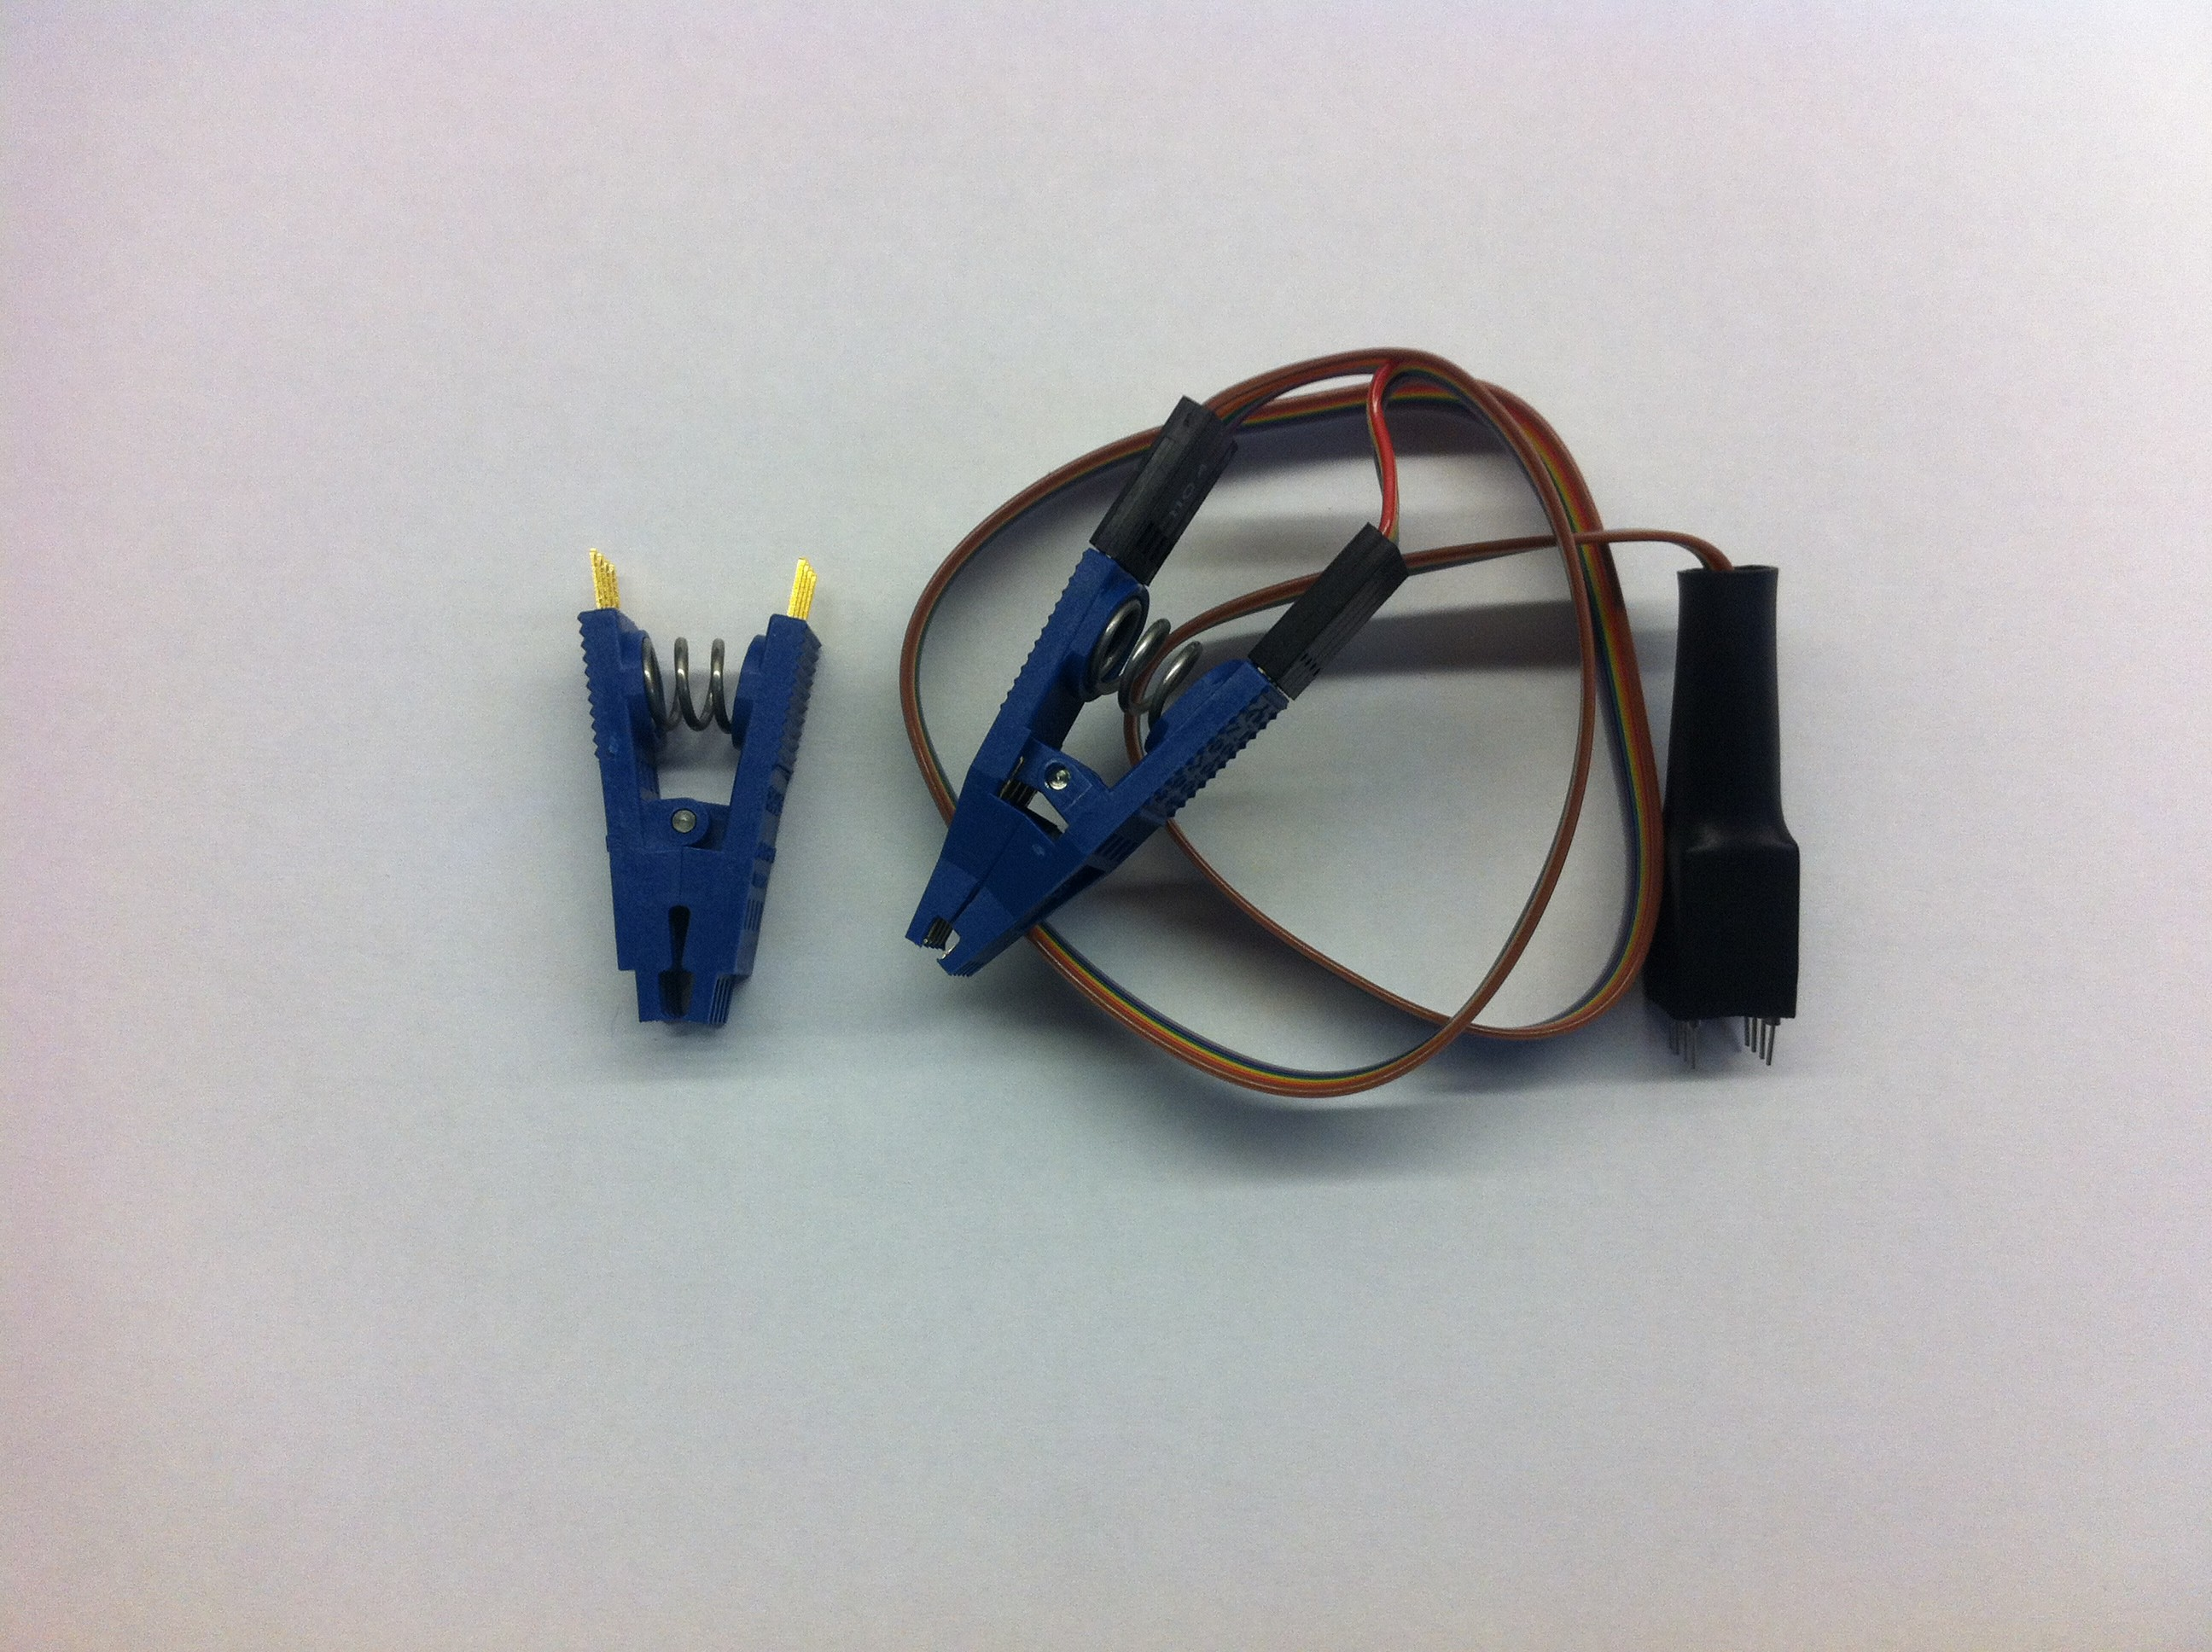 POMONA SOIC8 & DIP8 Lead with Clips